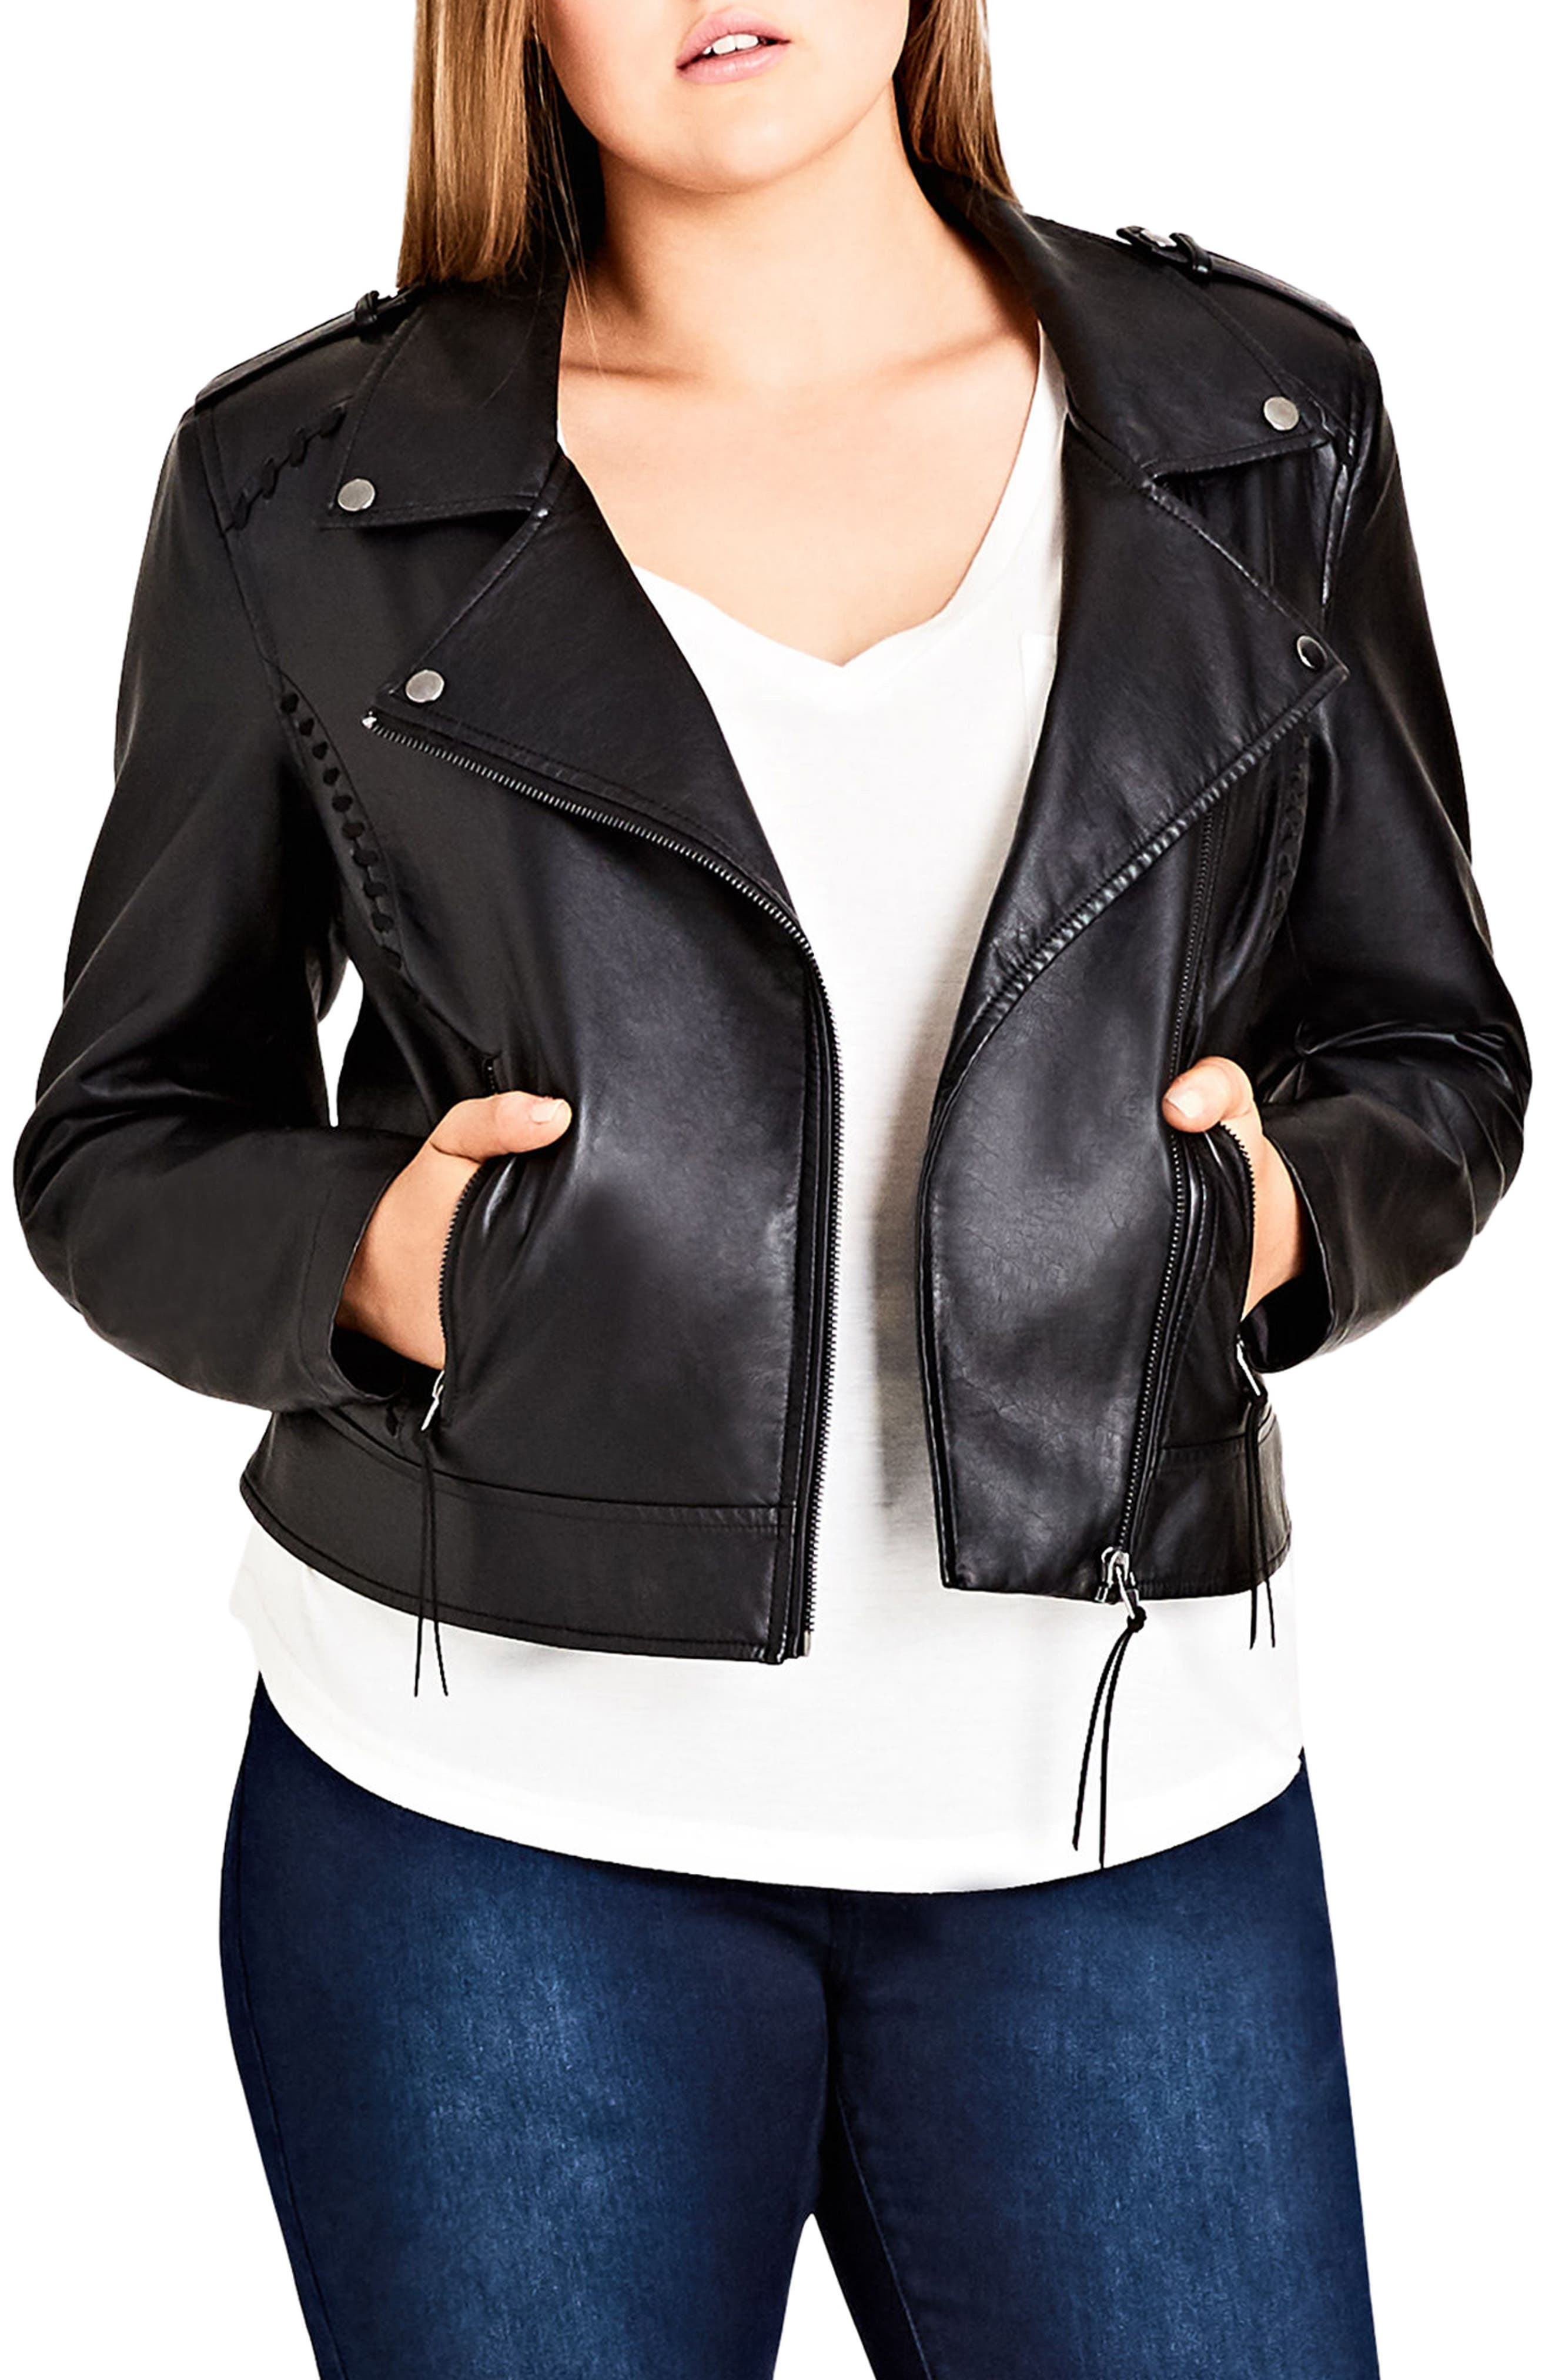 Alternate Image 1 Selected - City Chic Whipstitched Biker Jacket (Plus Size)